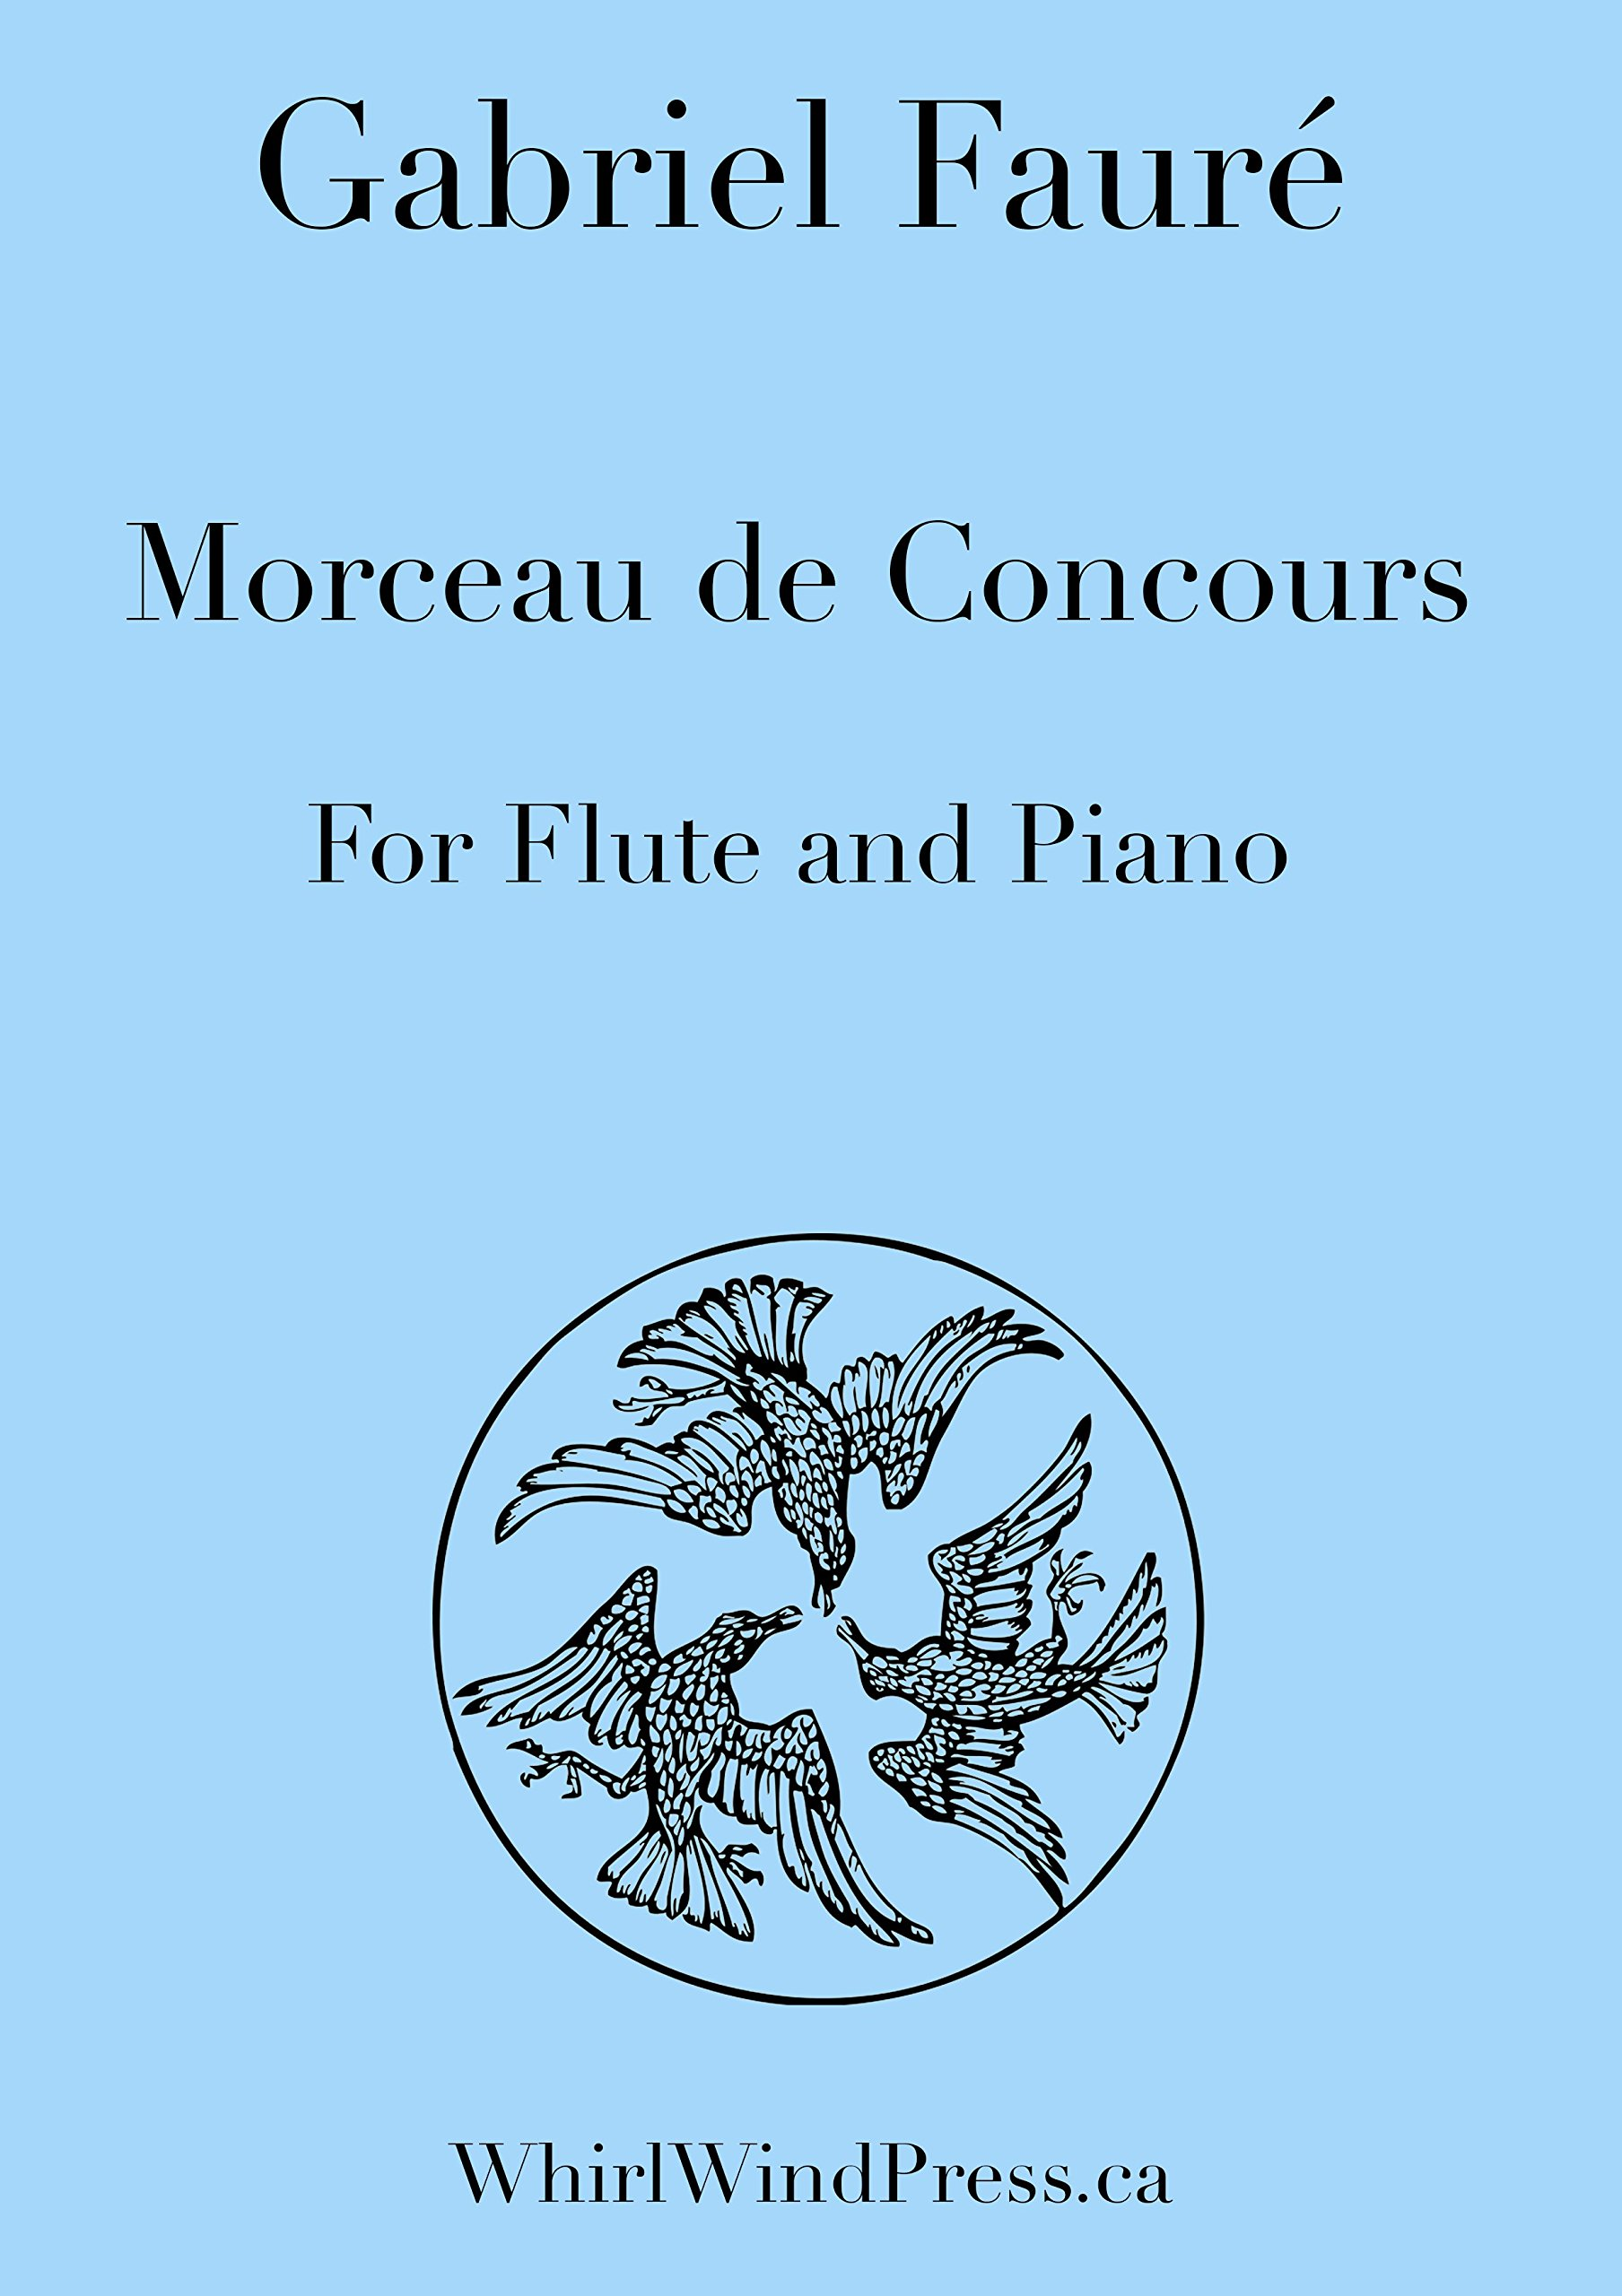 Morceau De Concours for Flute (Or Oboe) and Piano By Gabriel Fauré